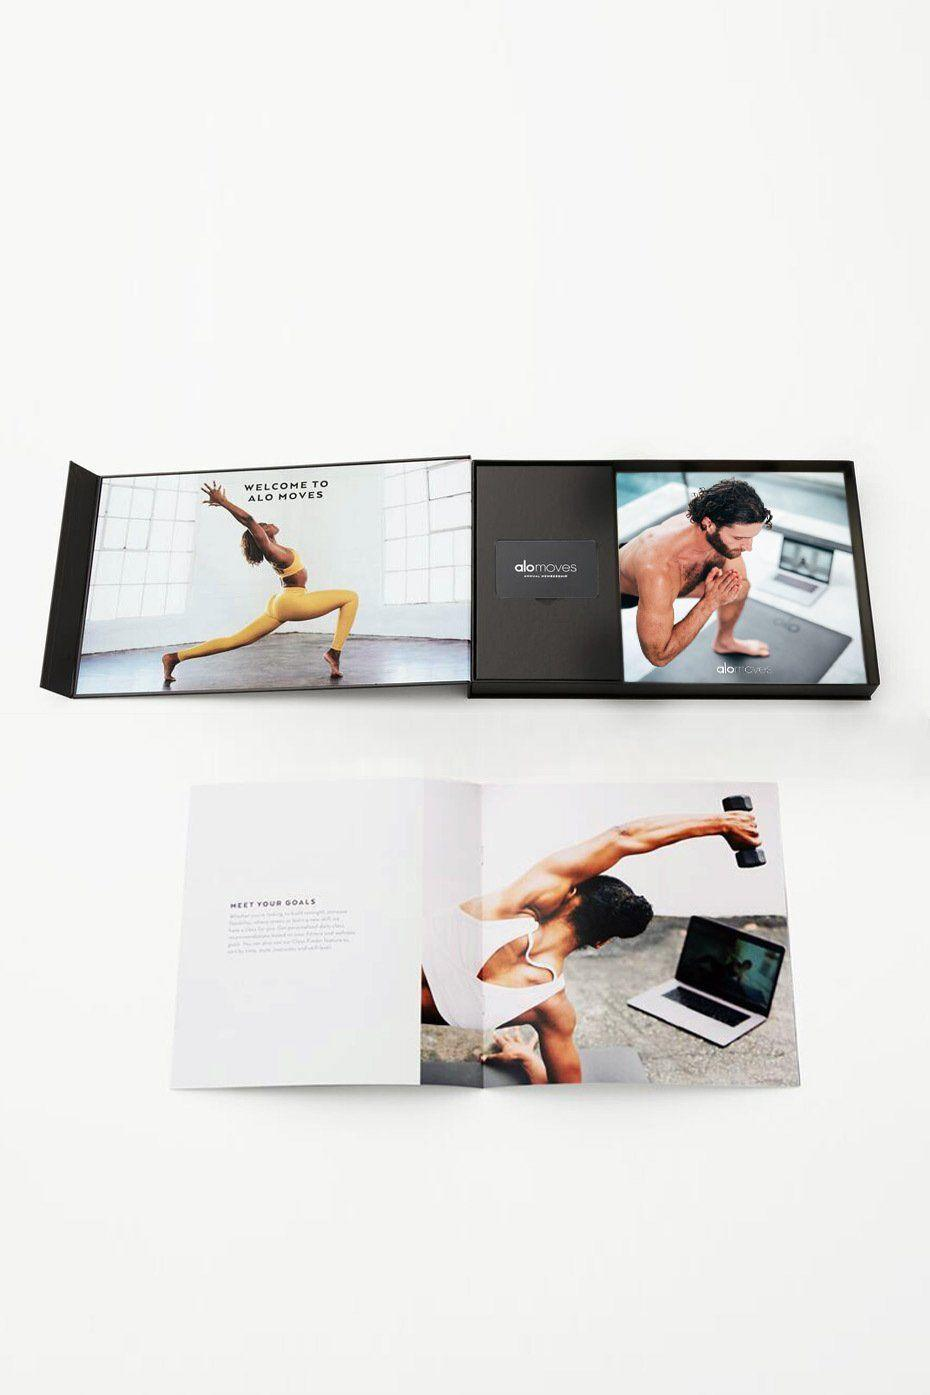 """<p><strong>Alo Yoga</strong></p><p>aloyoga.com</p><p><strong>$99.00</strong></p><p><a href=""""https://go.redirectingat.com?id=74968X1596630&url=https%3A%2F%2Fwww.aloyoga.com%2Fproducts%2Falo-moves-gift-card&sref=https%3A%2F%2Fwww.menshealth.com%2Ftechnology-gear%2Fg34453261%2Fbest-gifts-for-sister%2F"""" rel=""""nofollow noopener"""" target=""""_blank"""" data-ylk=""""slk:BUY IT HERE"""" class=""""link rapid-noclick-resp"""">BUY IT HERE</a></p><p>The best gift for the beginner, intermediate, or pro yogi is the one that keeps on giving all year long. Alo Moves brings renowned global instructors across yoga, meditation, and mindful movement to her living room. It's a lifestyle and community she will love to be a part of.</p>"""